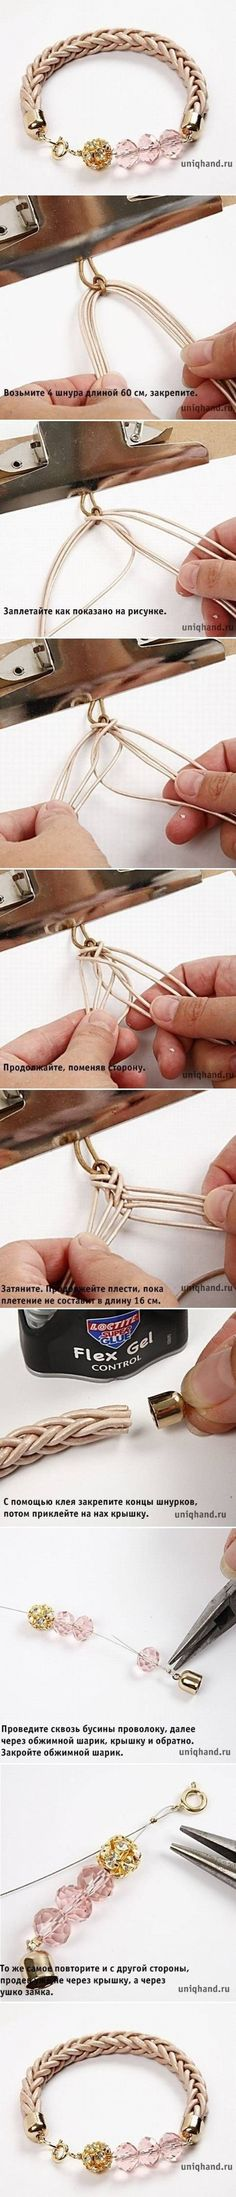 37 Ideas Diy Bracelets Easy Simple Leather Cord For 2019 Diy Leather Bracelet, Leather Jewelry, Wire Jewelry, Jewelry Crafts, Beaded Jewelry, Jewelery, Handmade Jewelry, Beaded Bracelets, Diy Bracelet